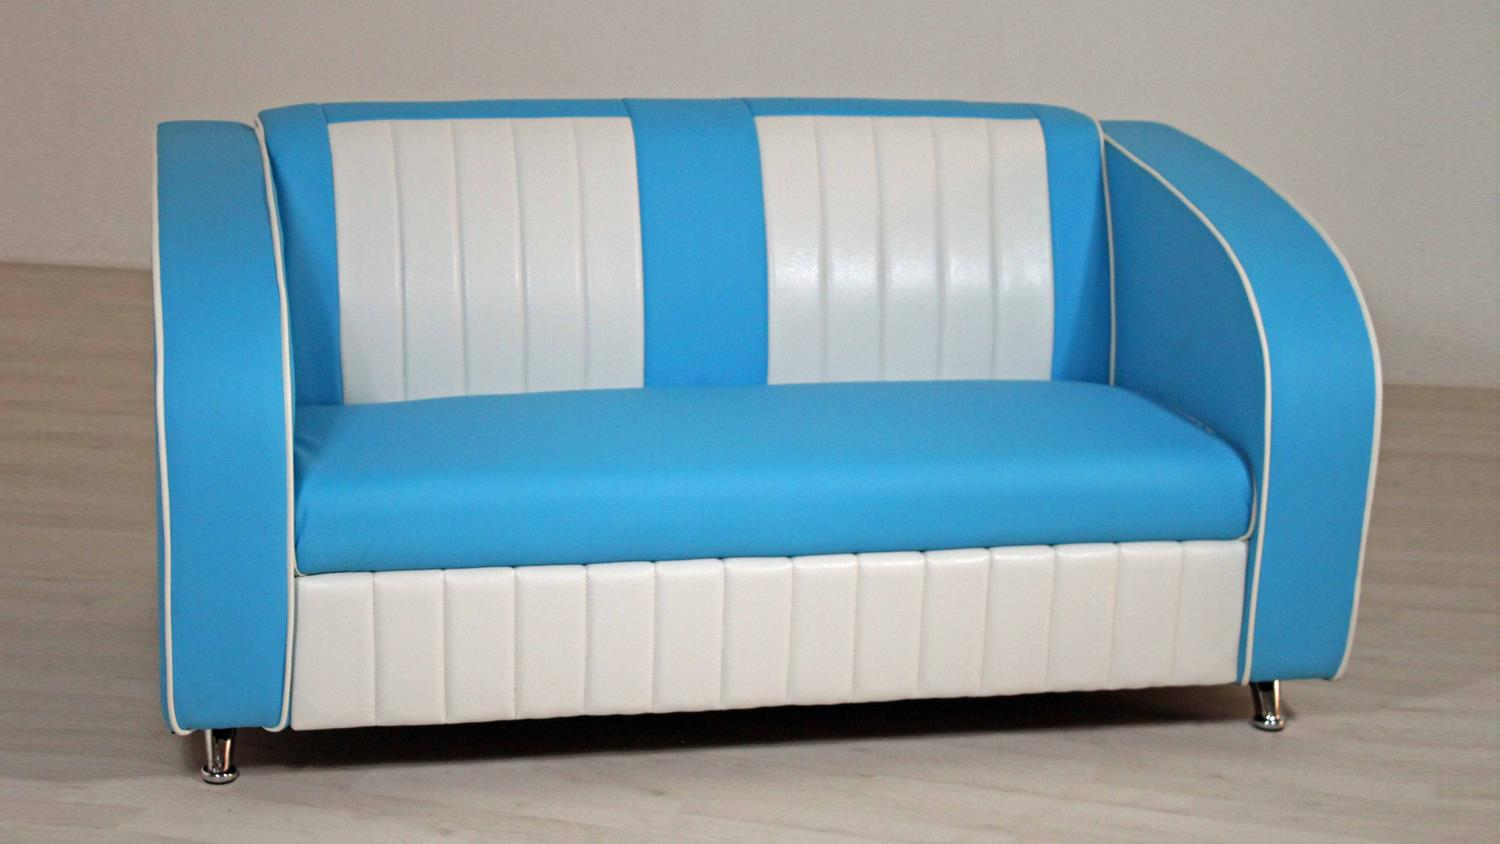 sofabank elvis polstersofa in blau wei american diner 50er jahre. Black Bedroom Furniture Sets. Home Design Ideas